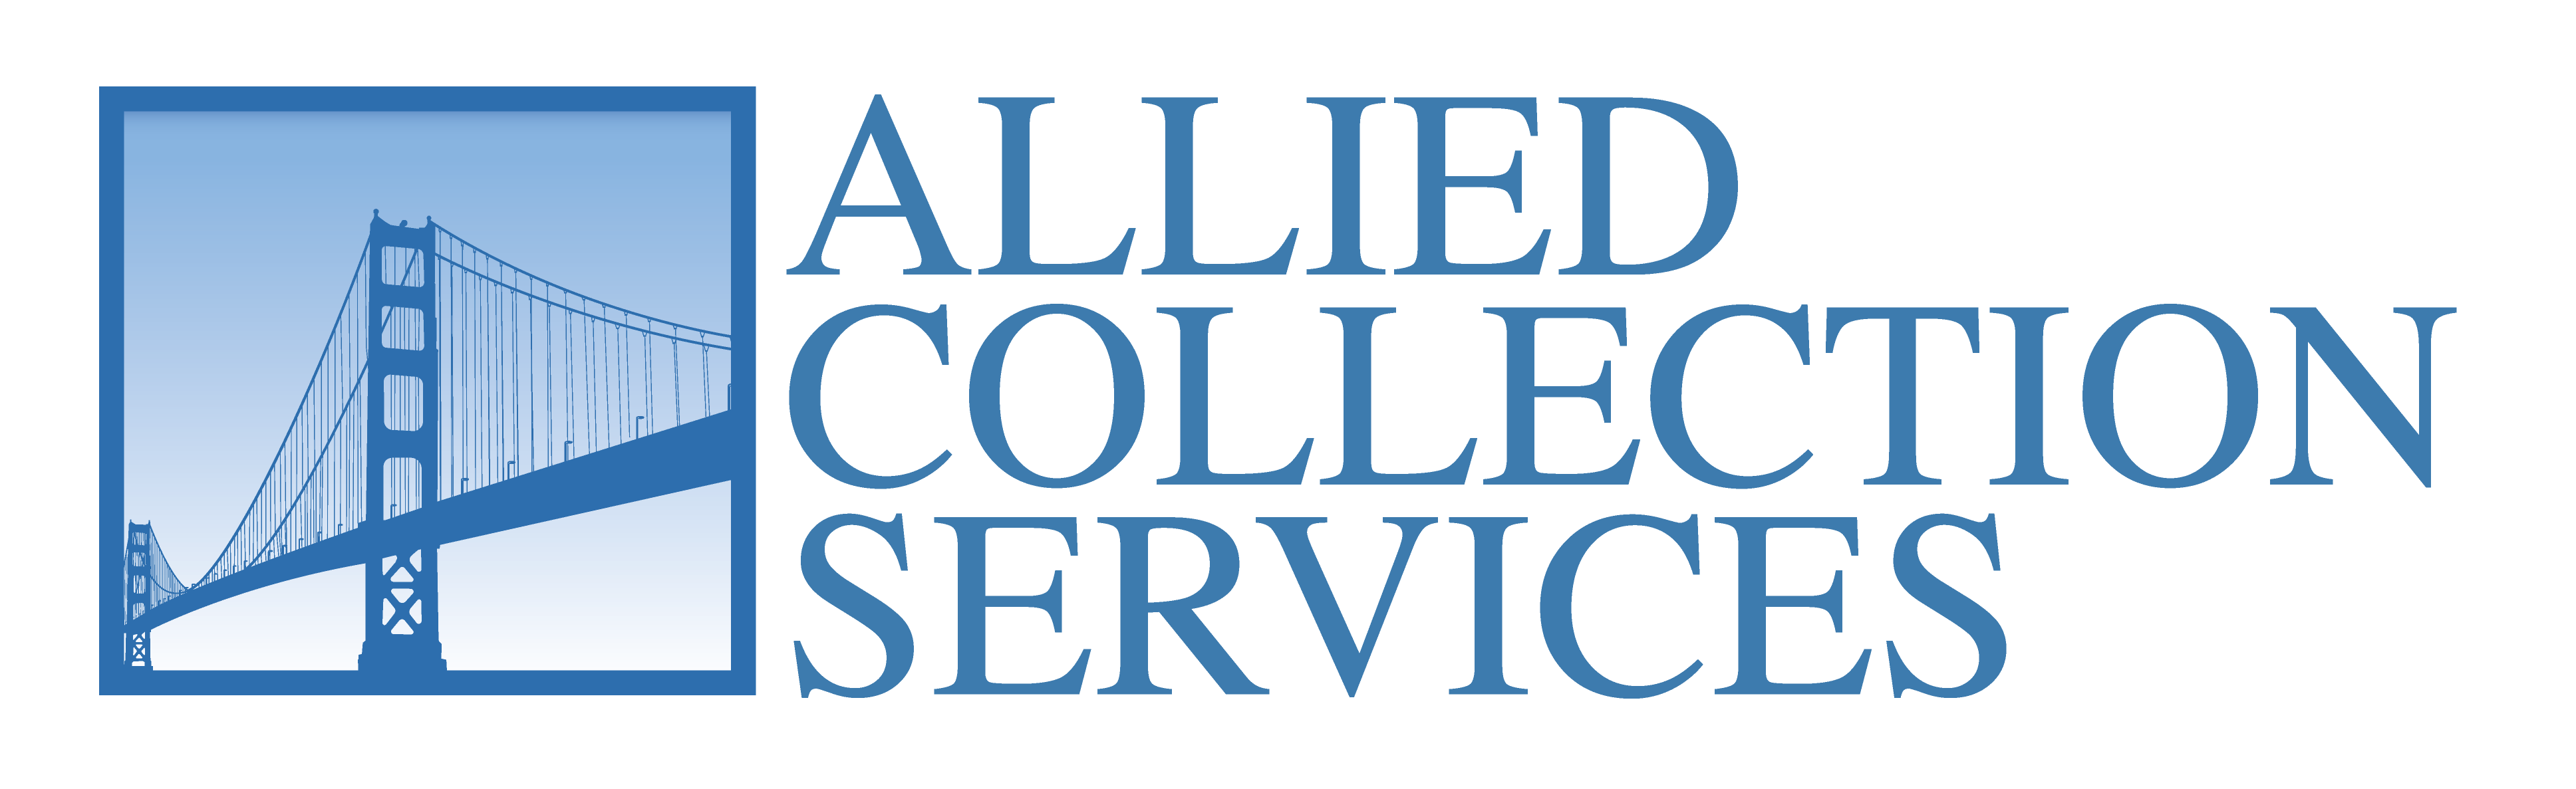 Allied Collection Services of California, LLC